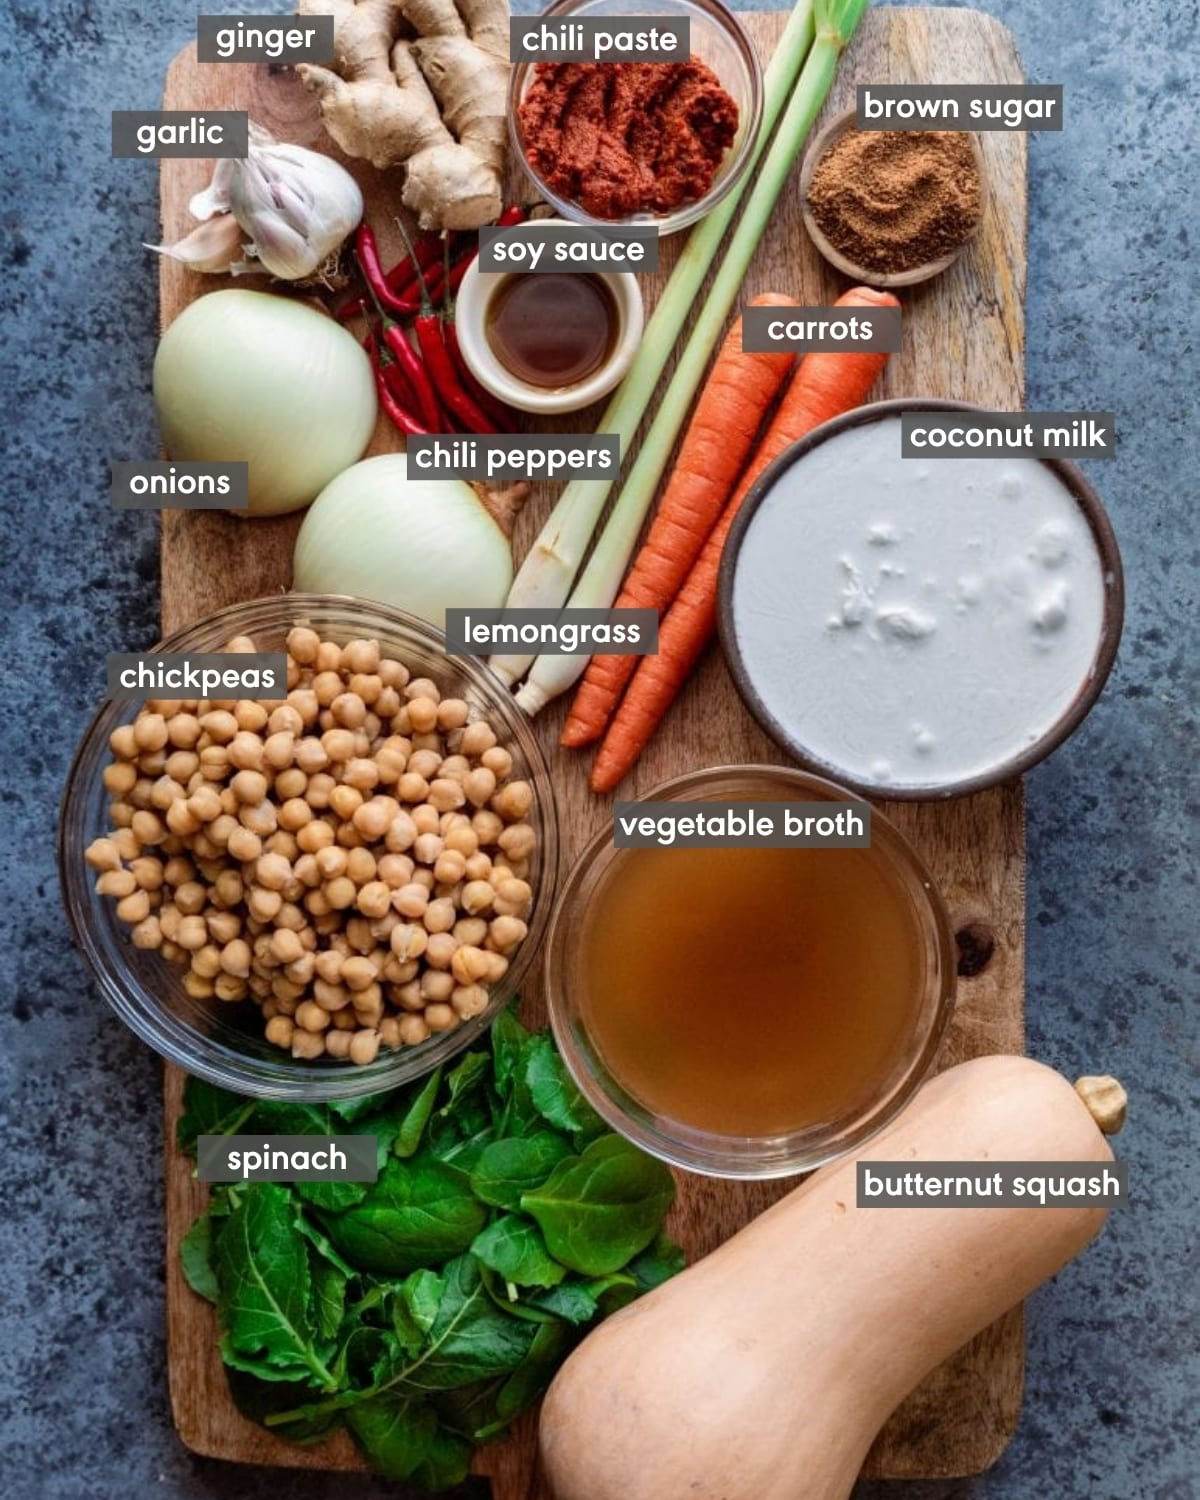 ingredients on cutting board with butternut squash, chickpeas, lemongrass, coconut milk, soy sauce, bird's eye chili peppers, spinach, soy sauce, brown sugar, chili paste, vegetable broth, coconut milk, garlic, ginger, and onions